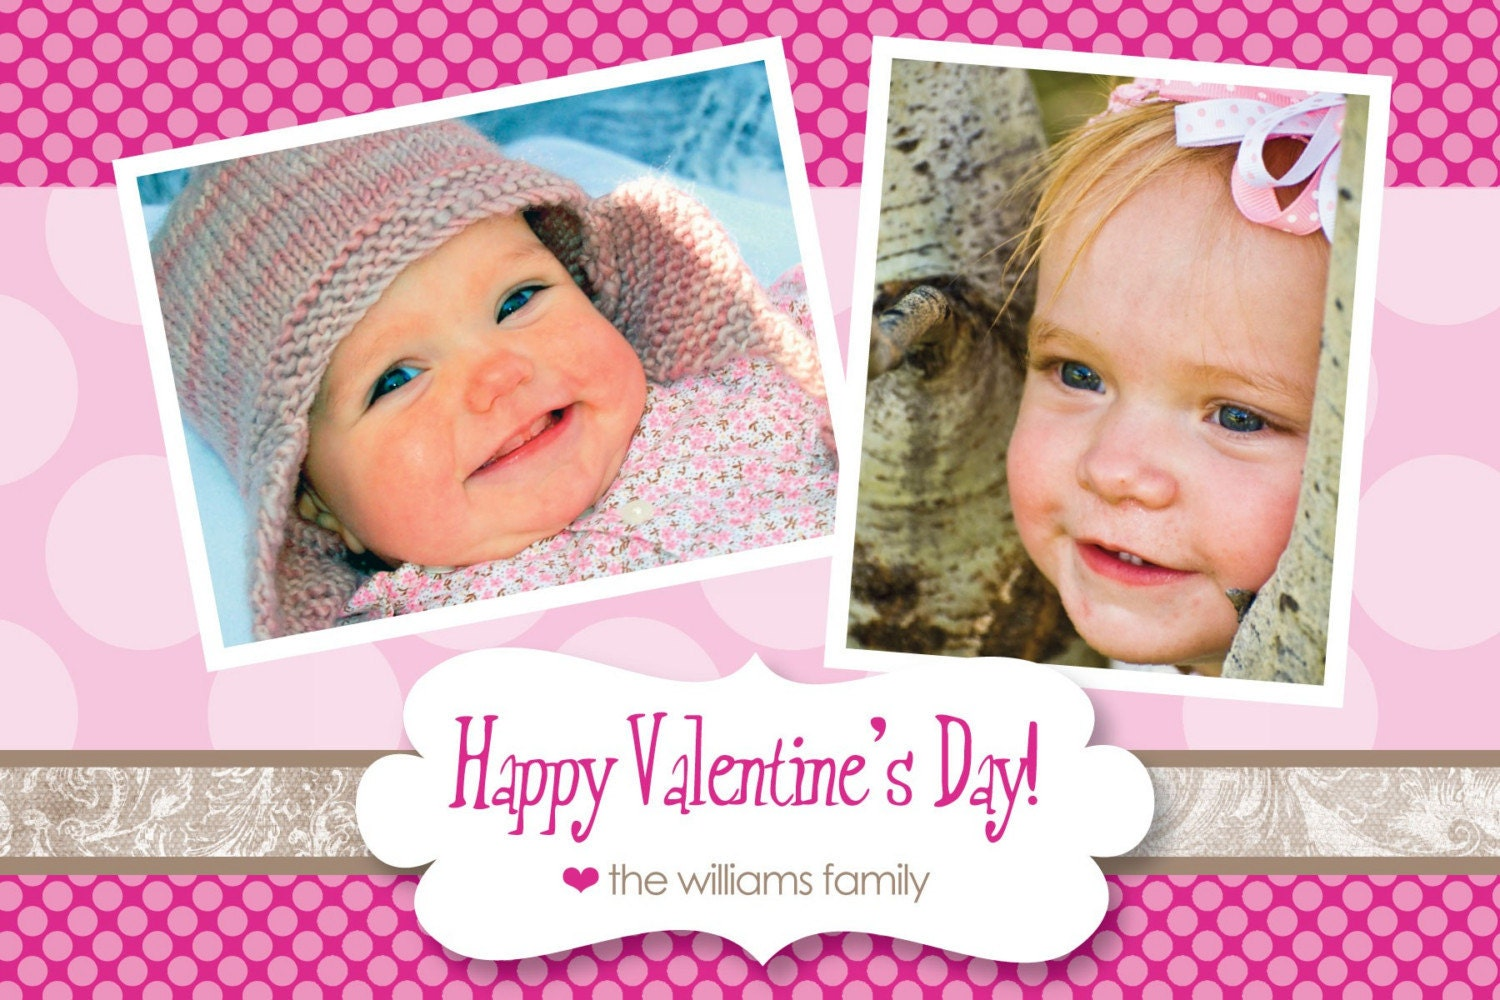 Pretty Polka Dots - Custom Photo Valentines Card